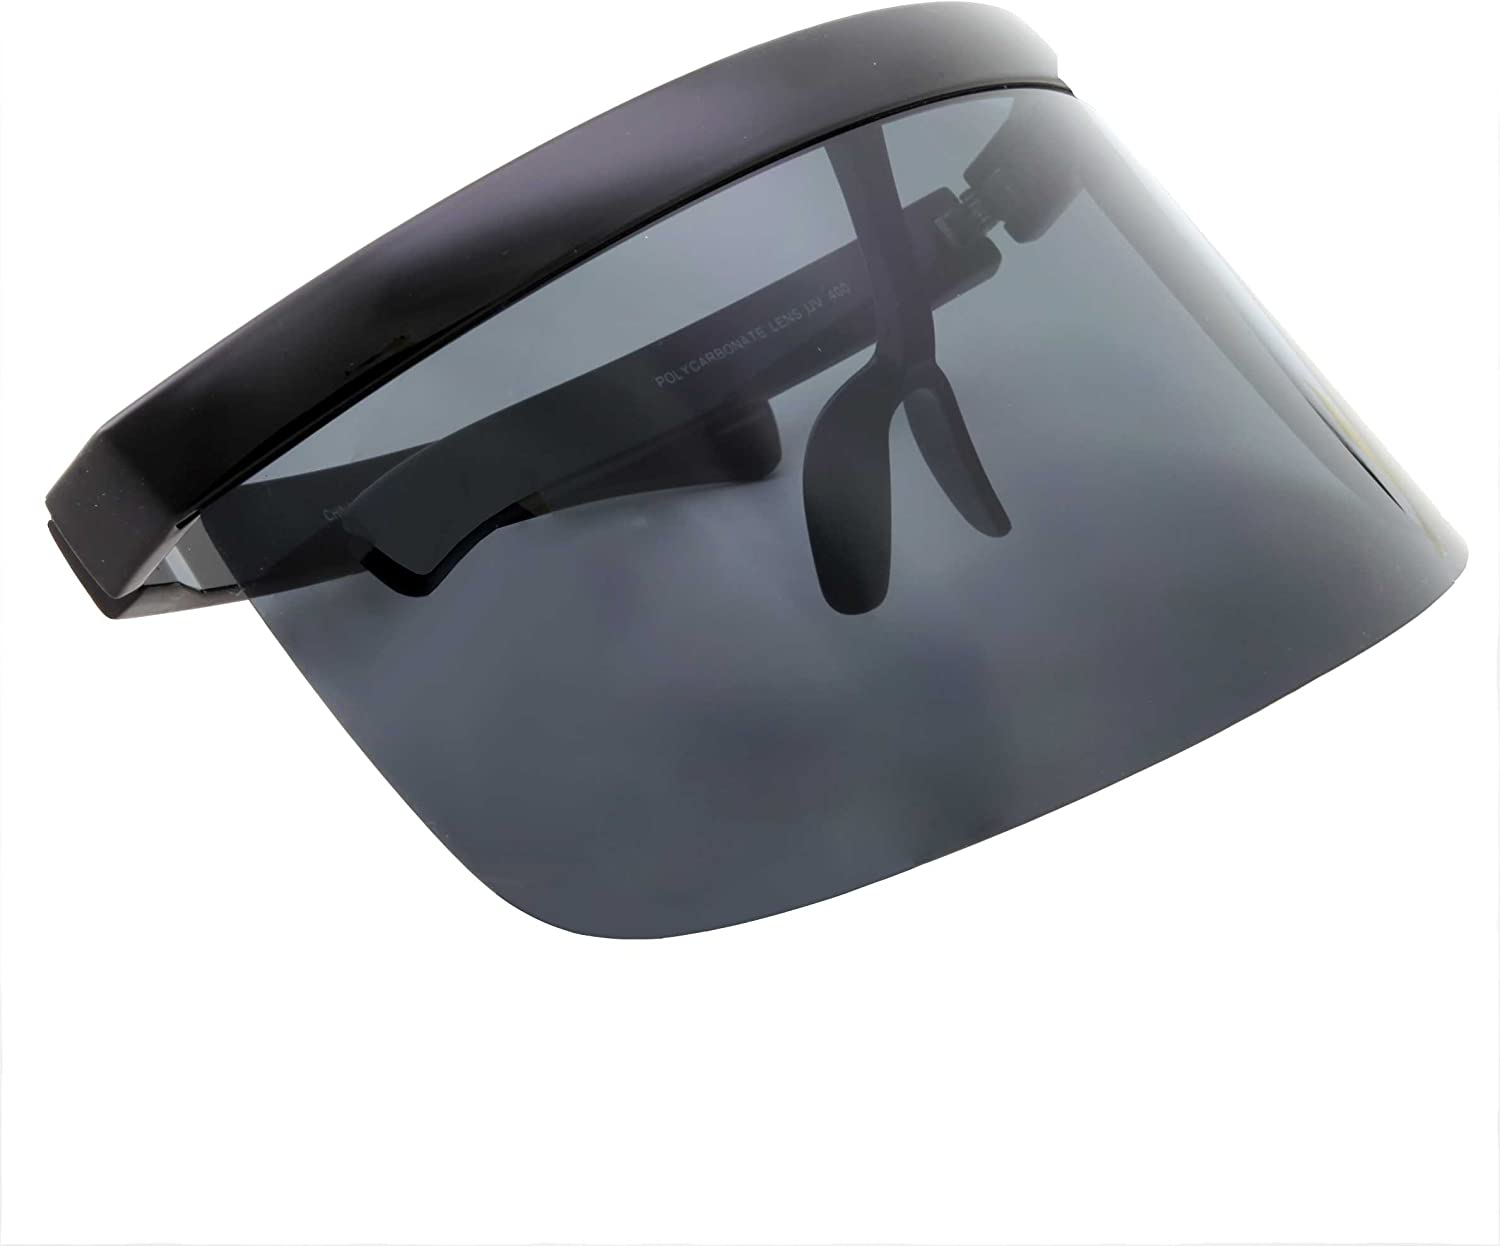 Futuristic Oversize Face Shield Visor Sunglasses Flat Top